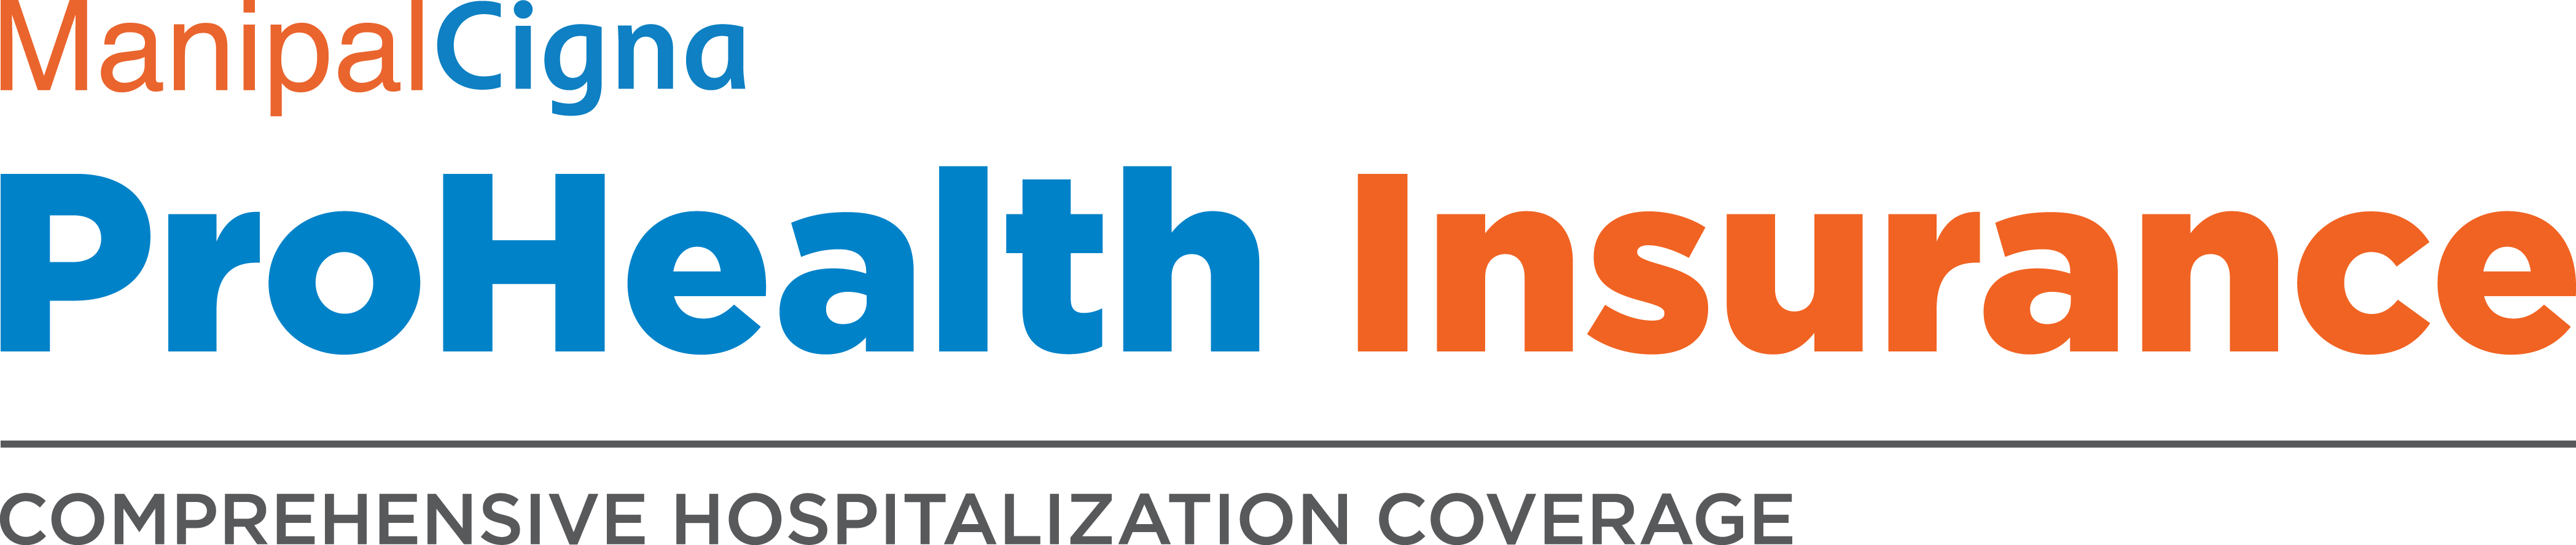 Prohealth Insurance